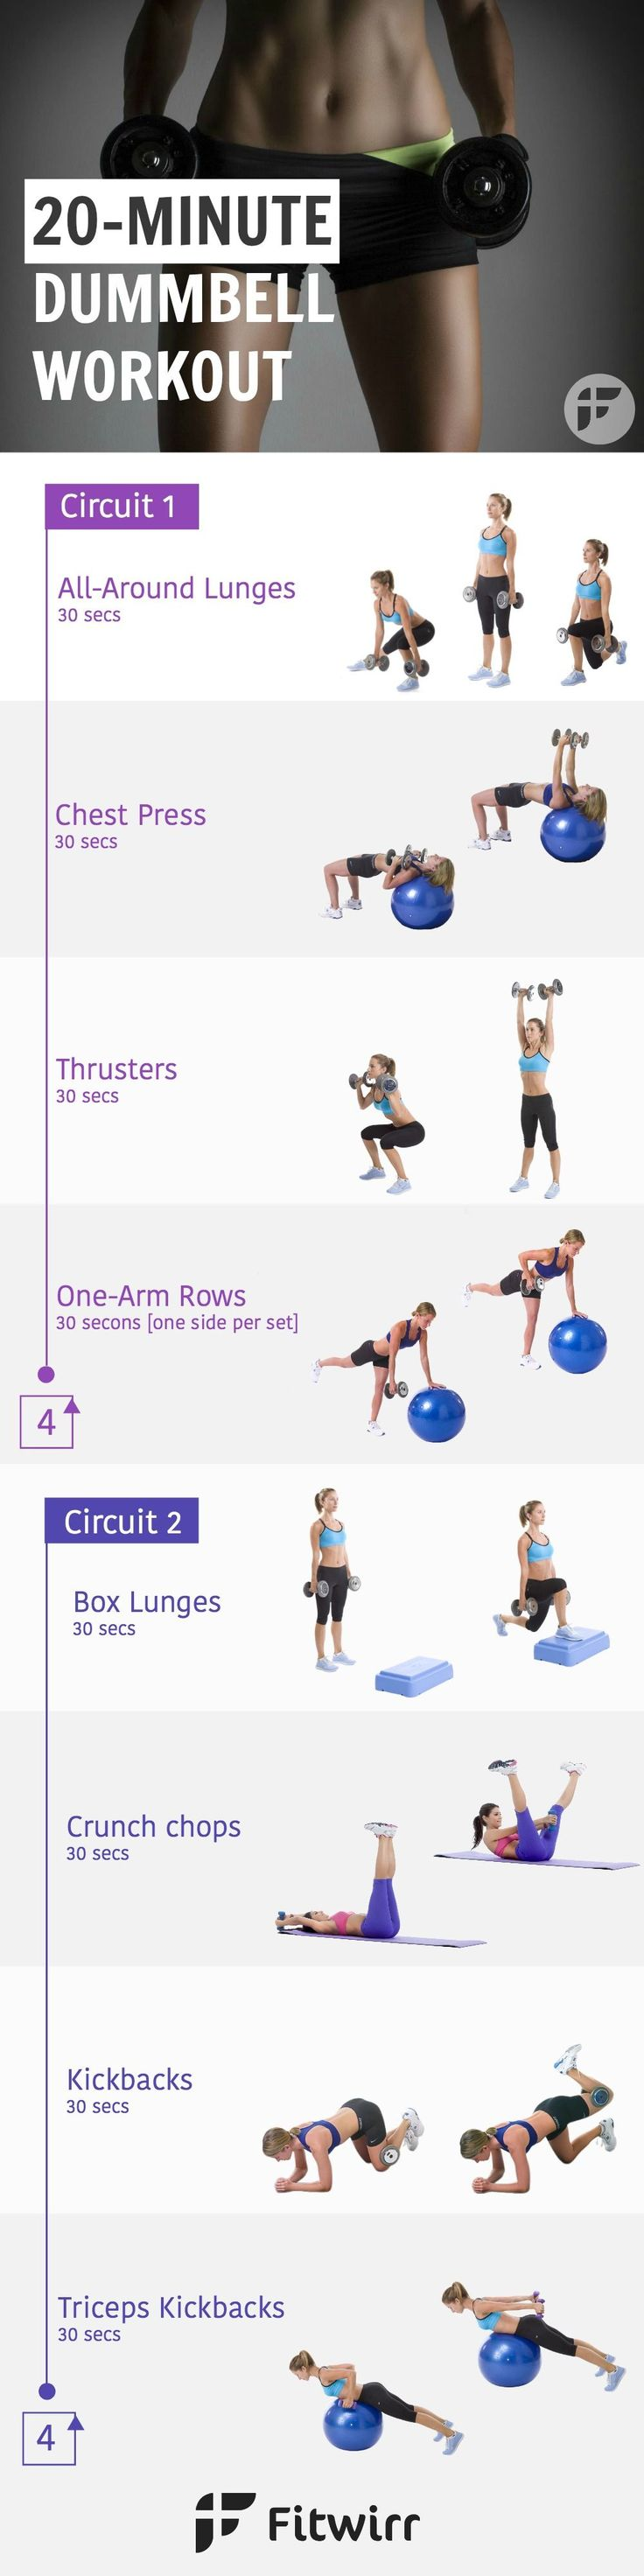 Turbocharge your fat burning engine with this 20 Minute Dumbbell Workout Routine. If your goal is to lose weight and burn fat, you need to crank up your metabolism. Perform this workout 3 times  a week.